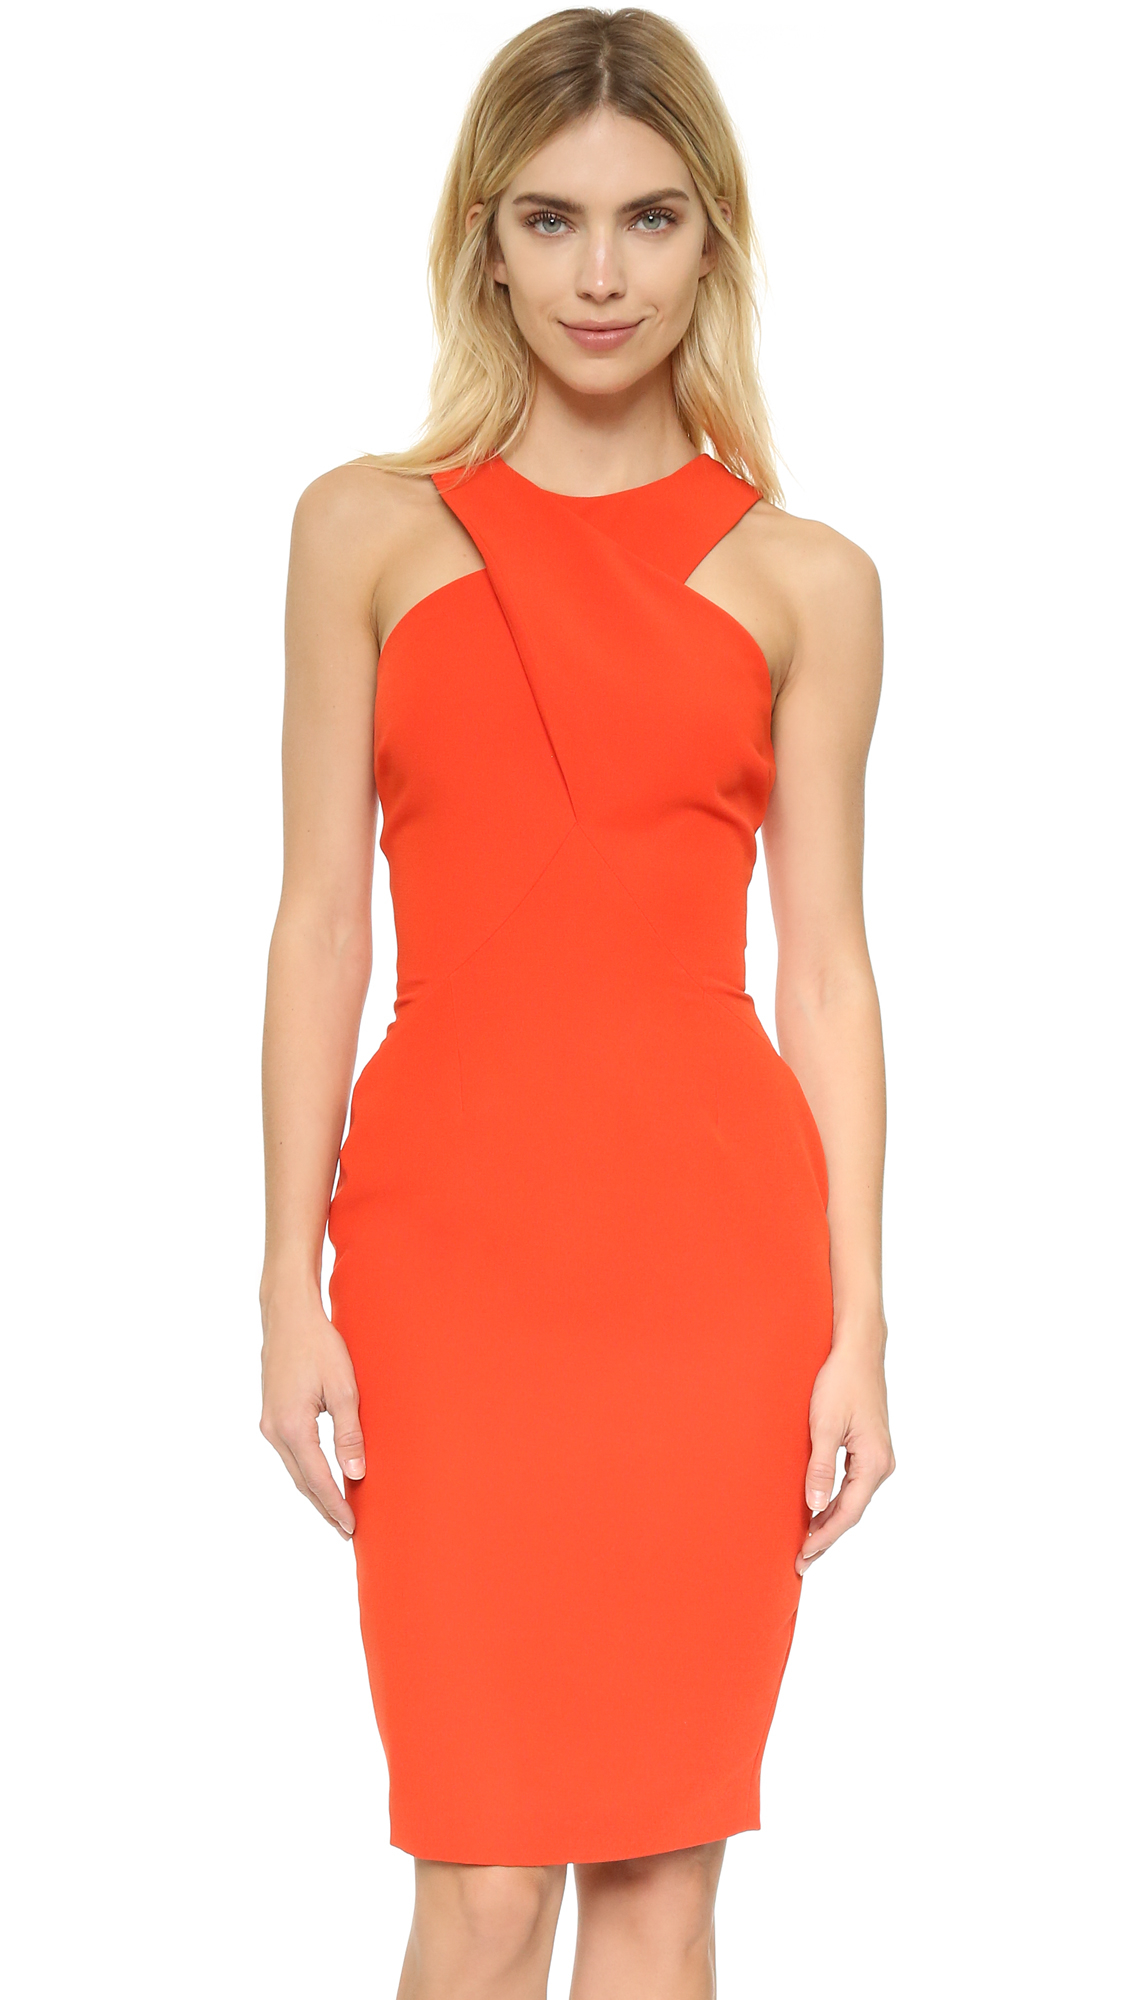 5550a34fd7e8 Finders Keepers Hurricane Dress in Orange - Lyst